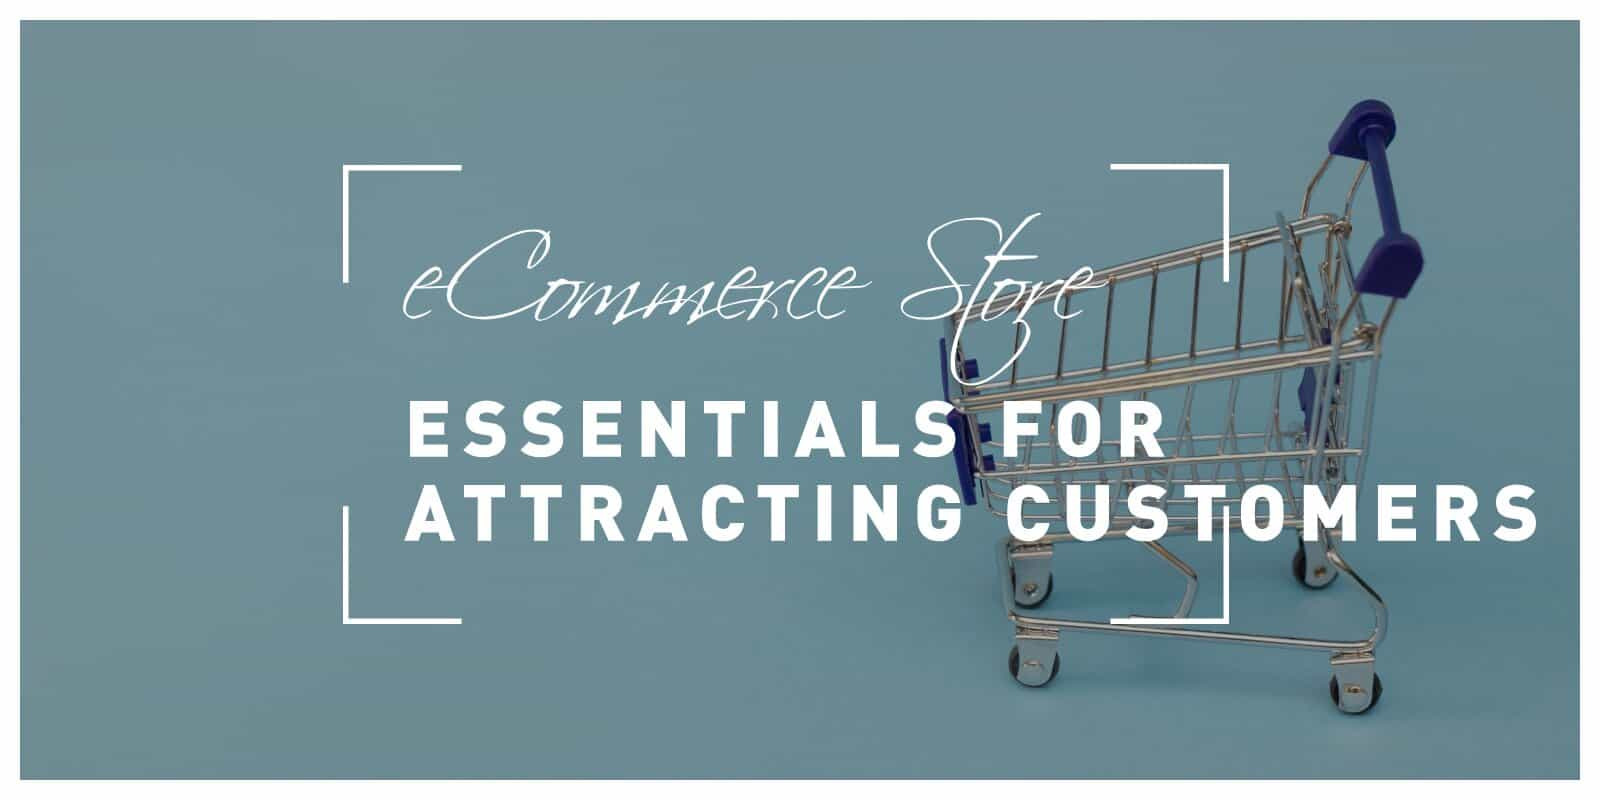 6 Ecommerce Store Essentials for Attracting Customers